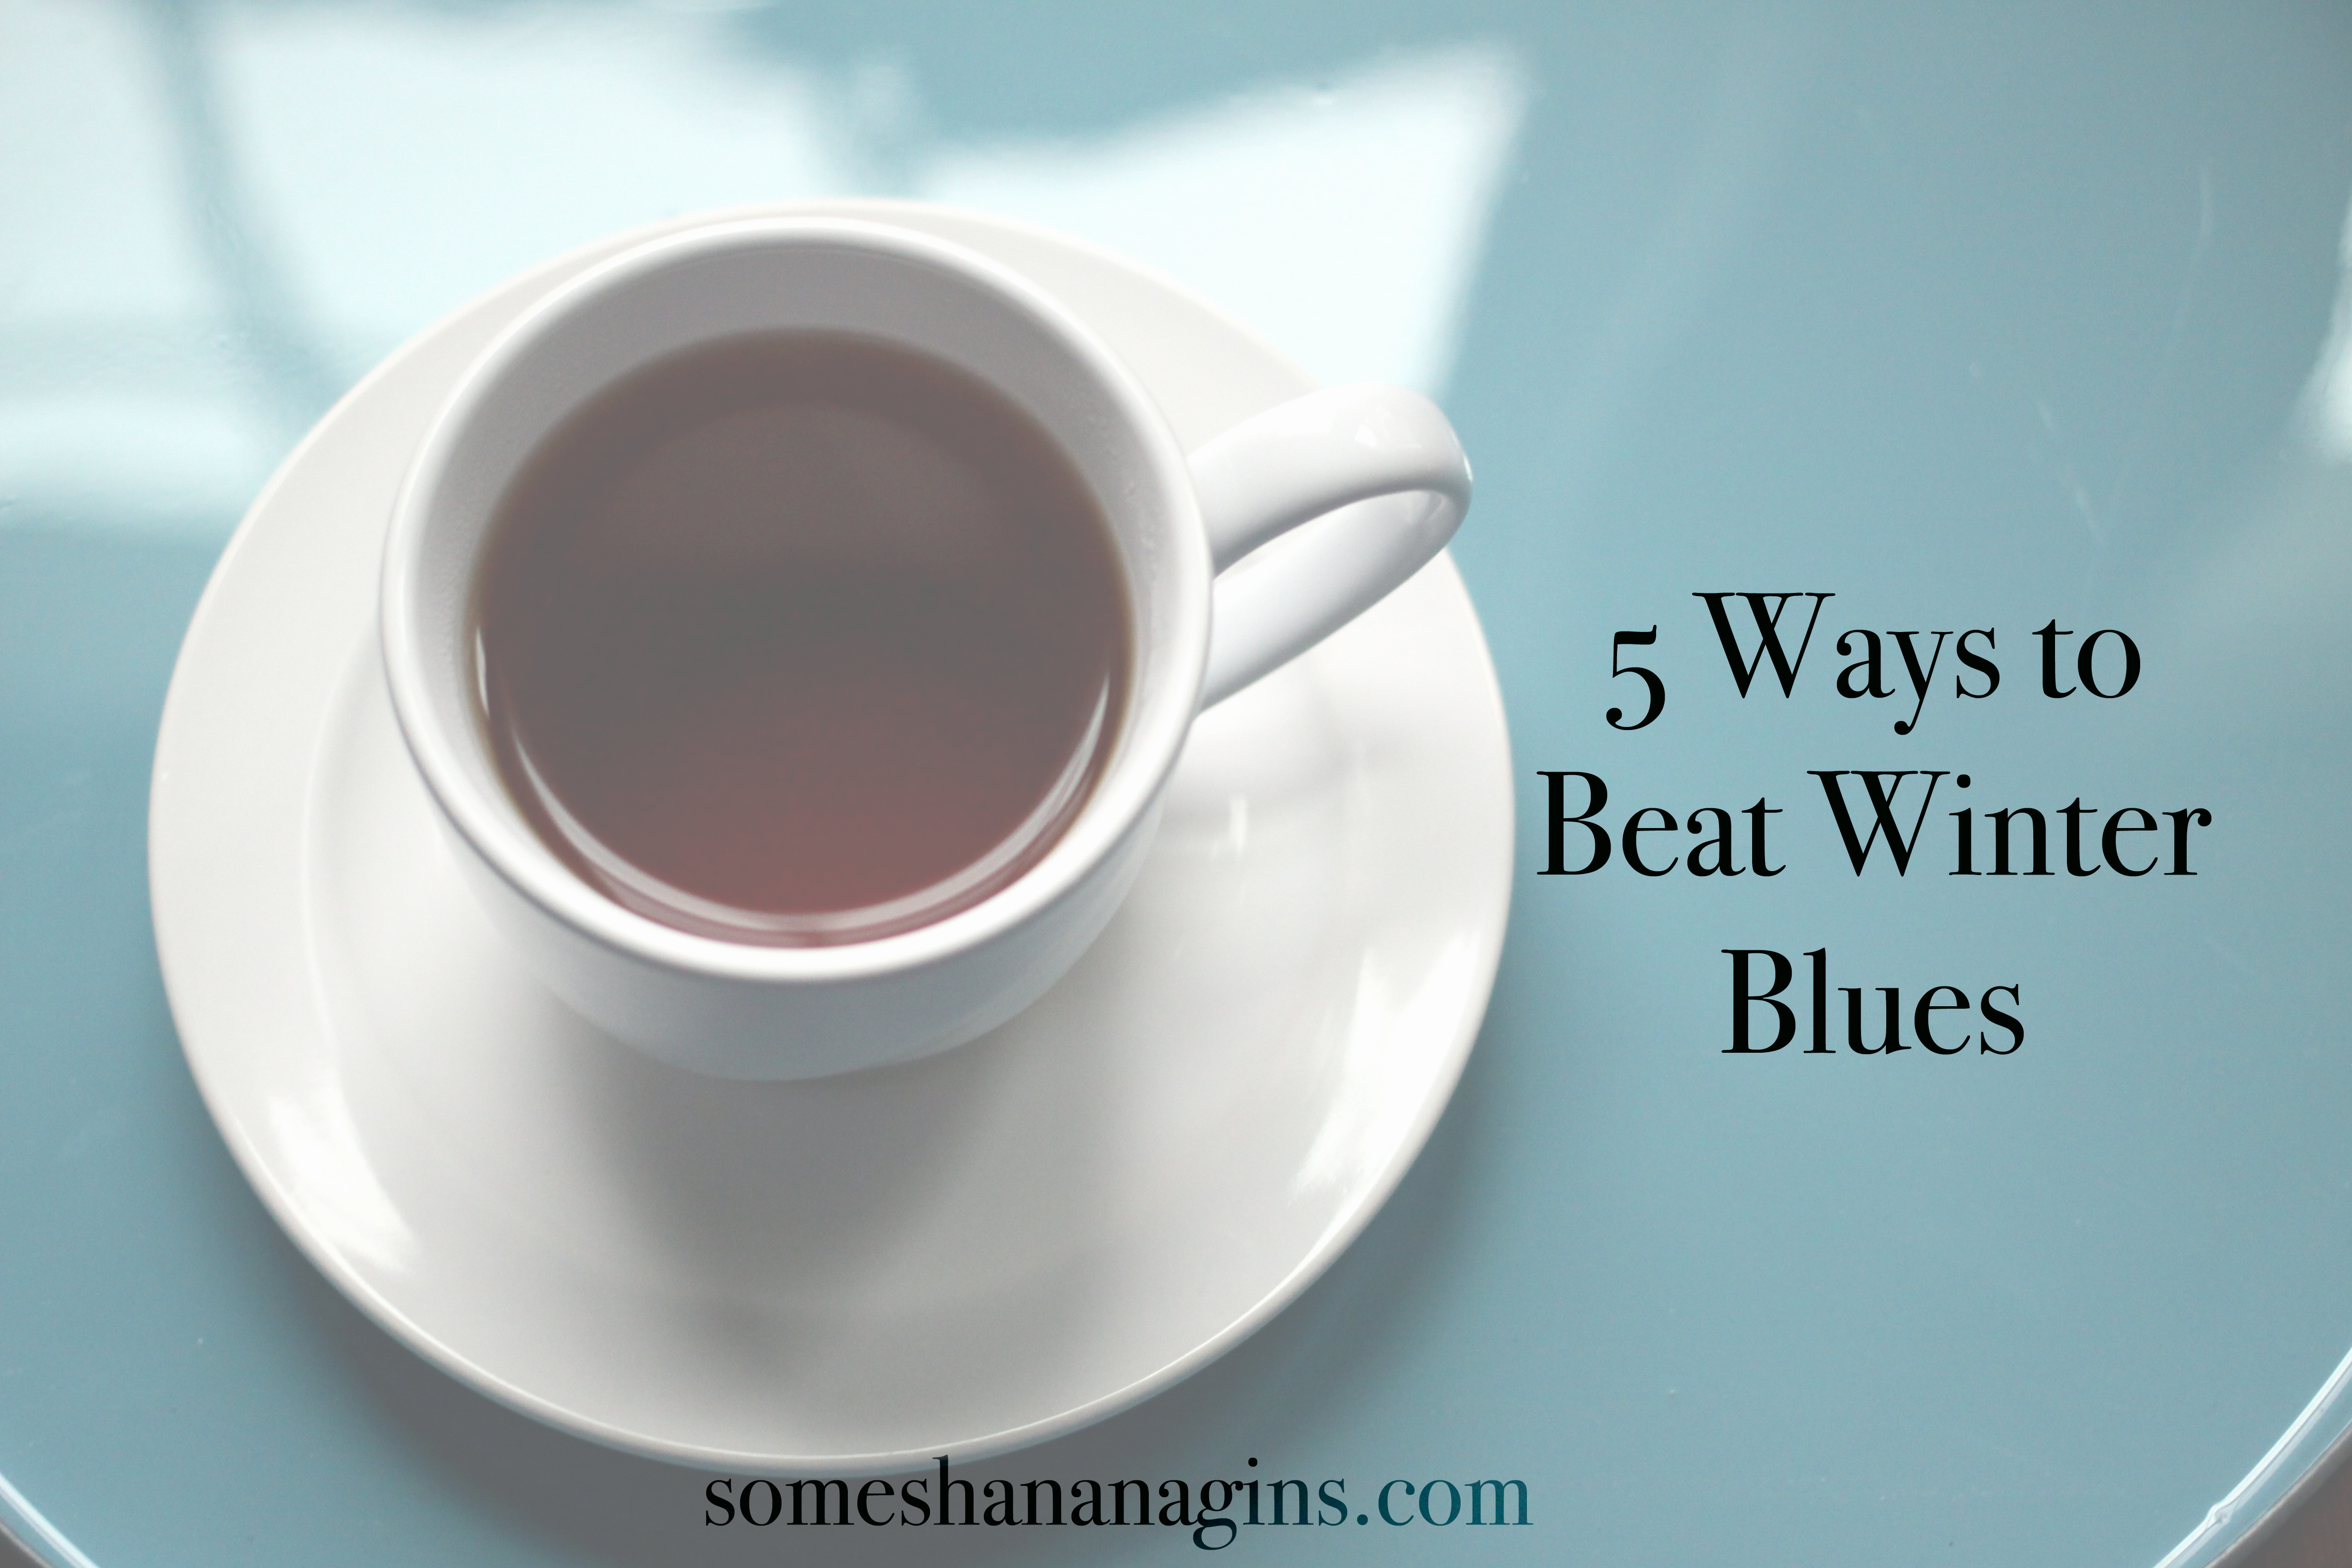 5 Ways to Beat Winter Blues - Some Shananagins